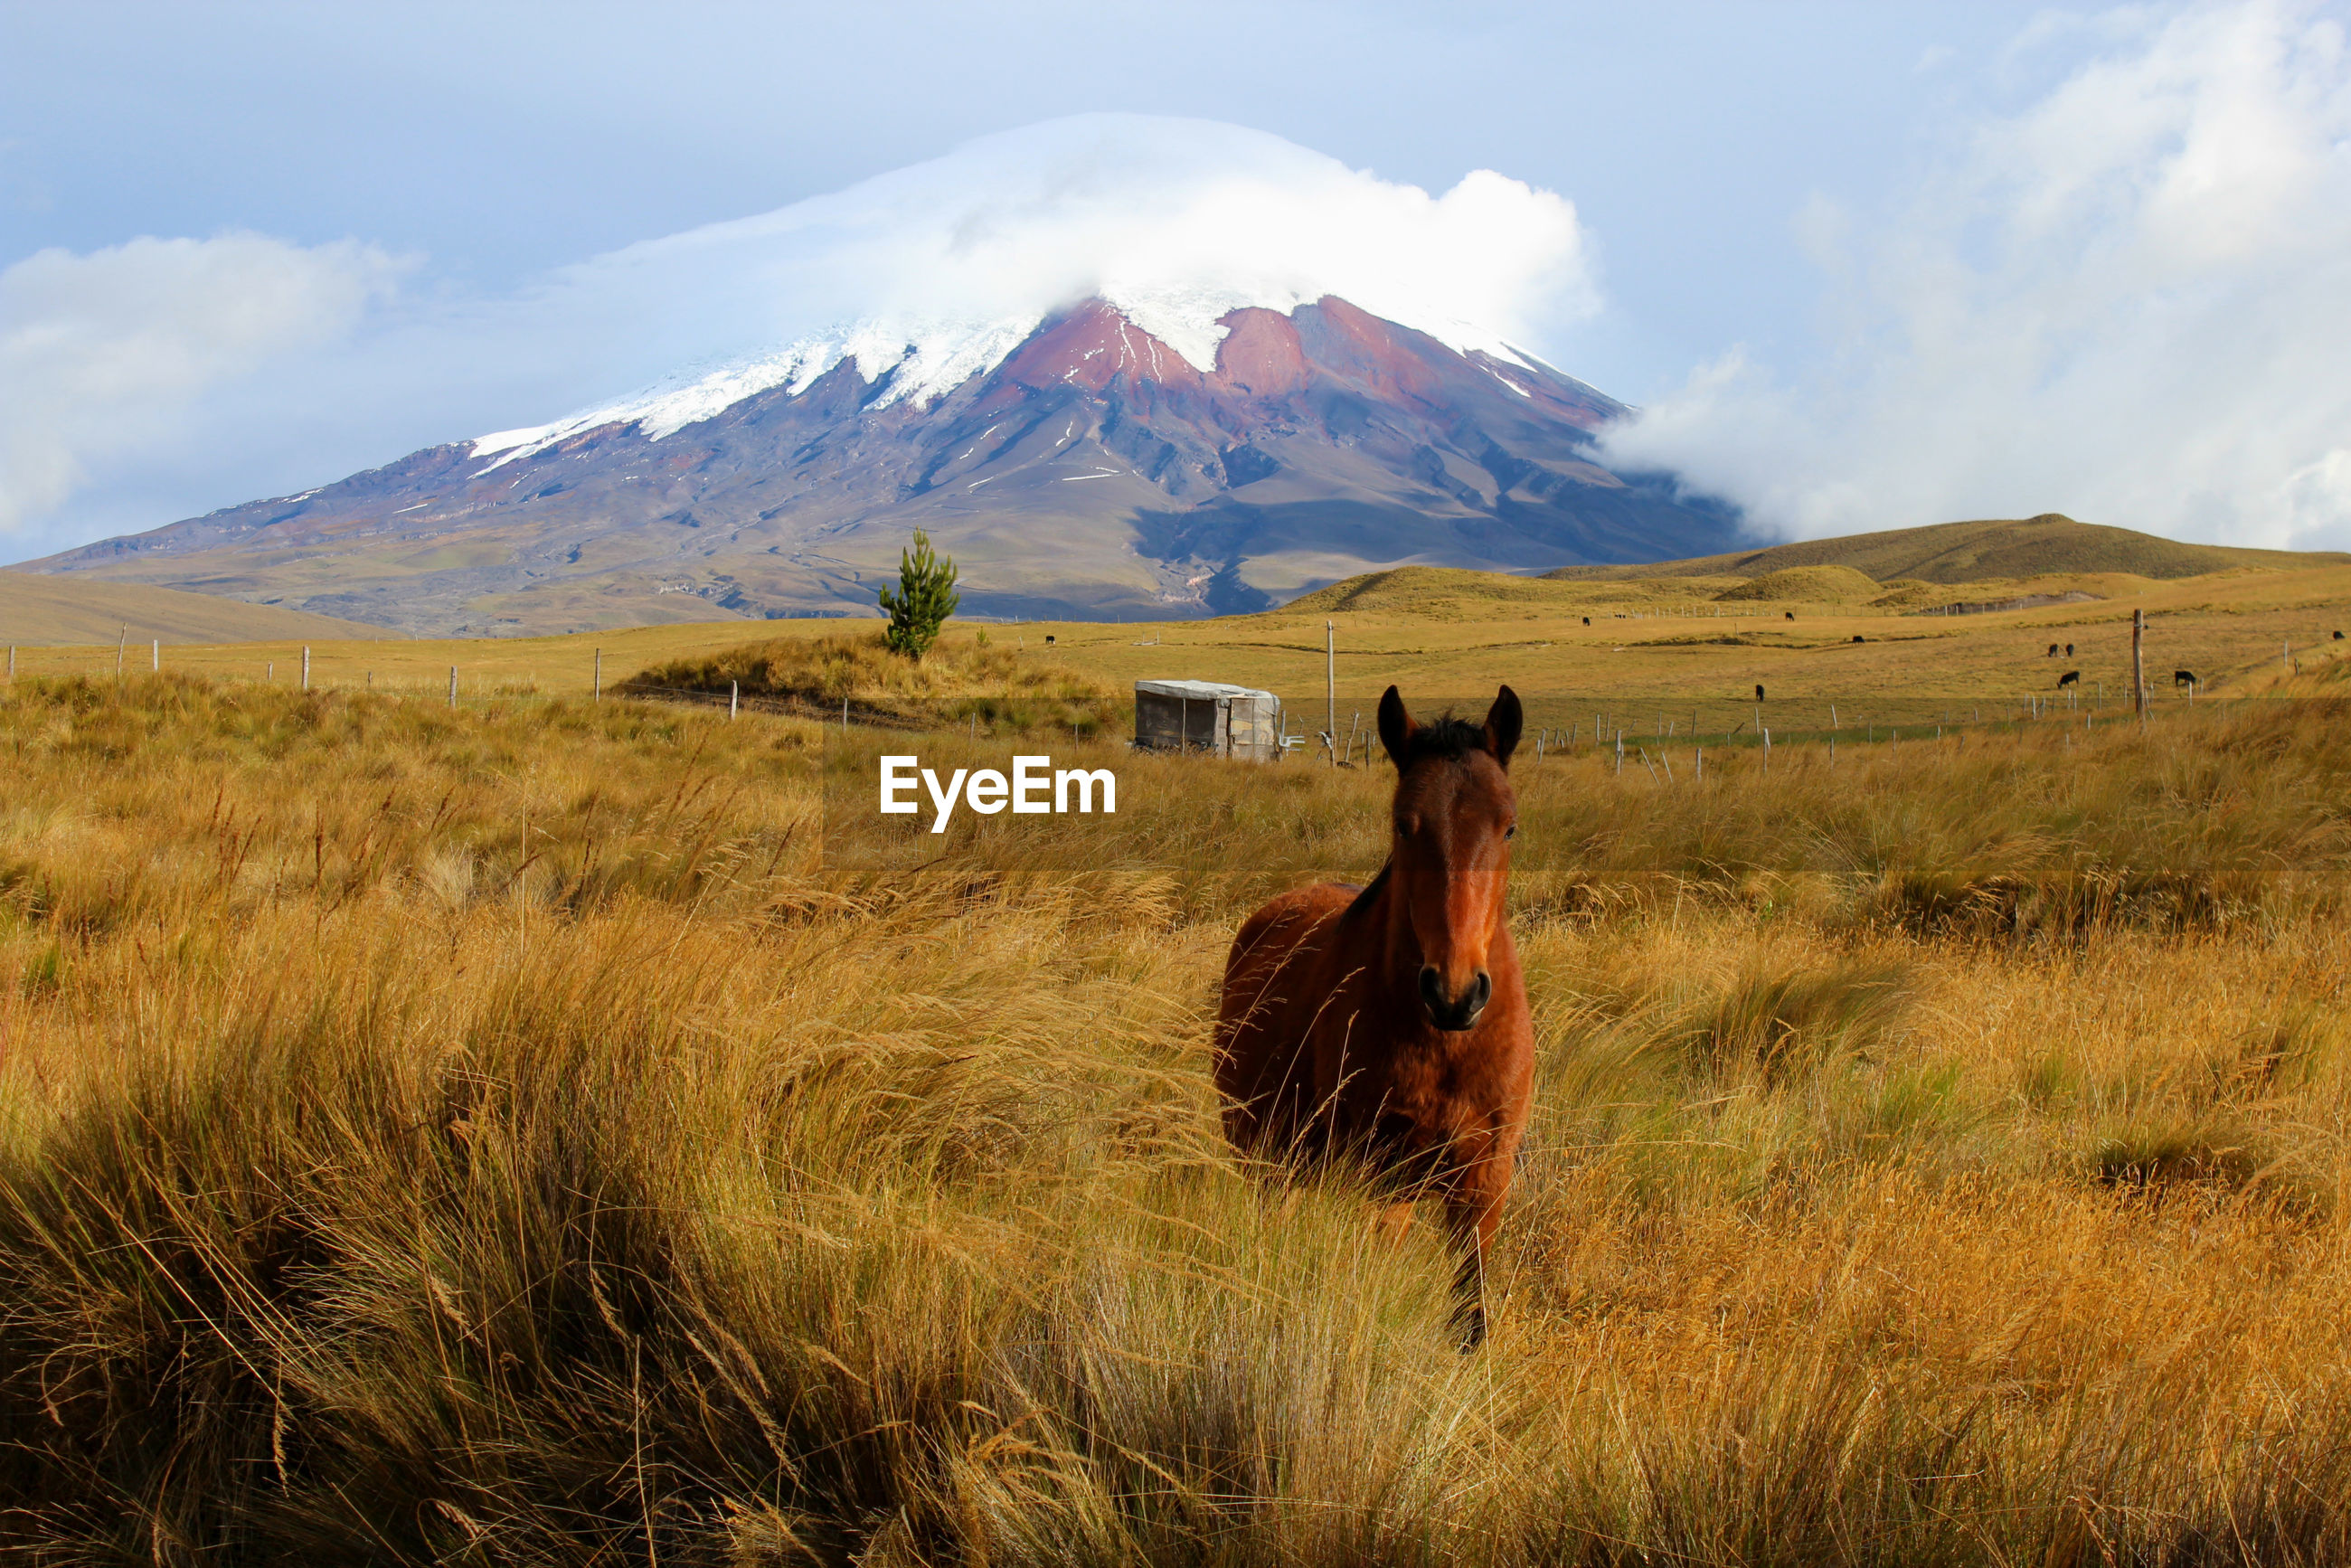 Horse standing on field against mountain range